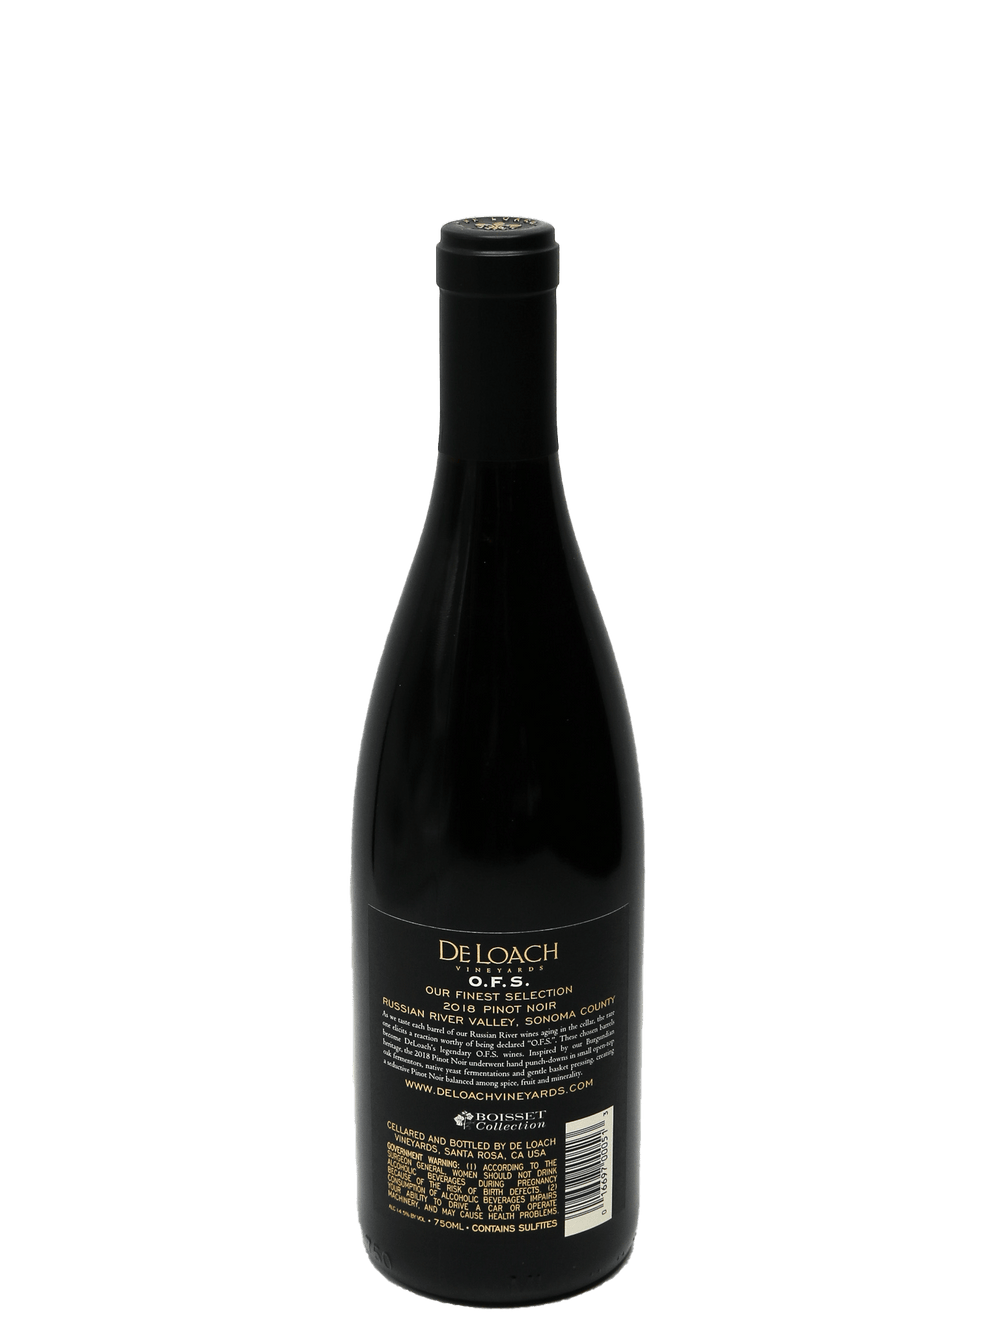 2018 DeLoach Pinot Noir OFS Russian River Valley